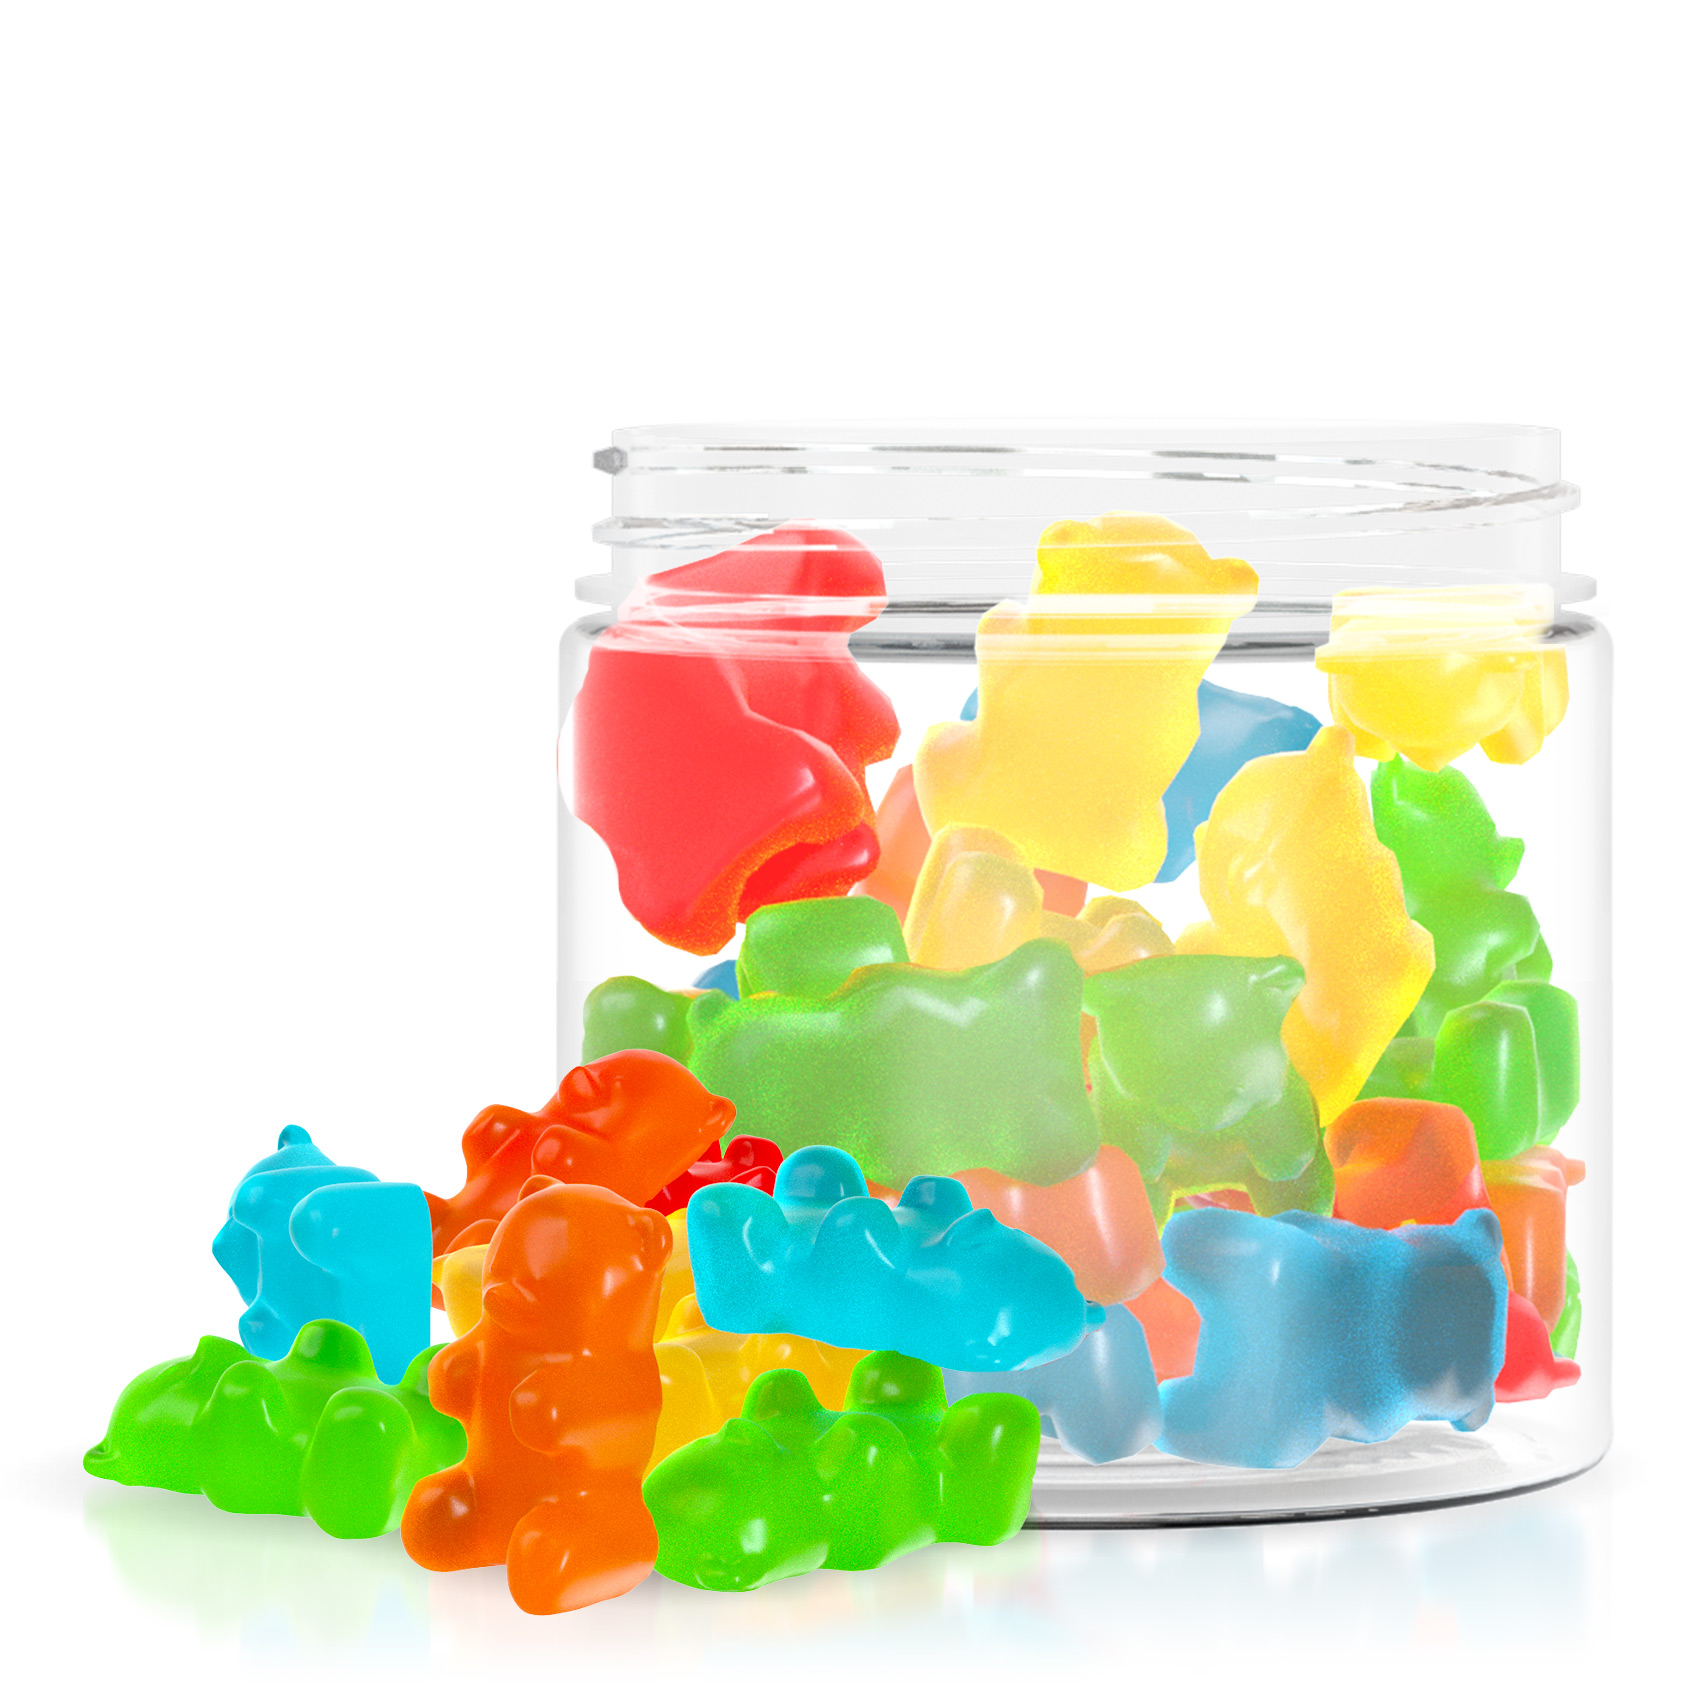 Relax Gummies - CBD Infused Gummy Bears - 250mg